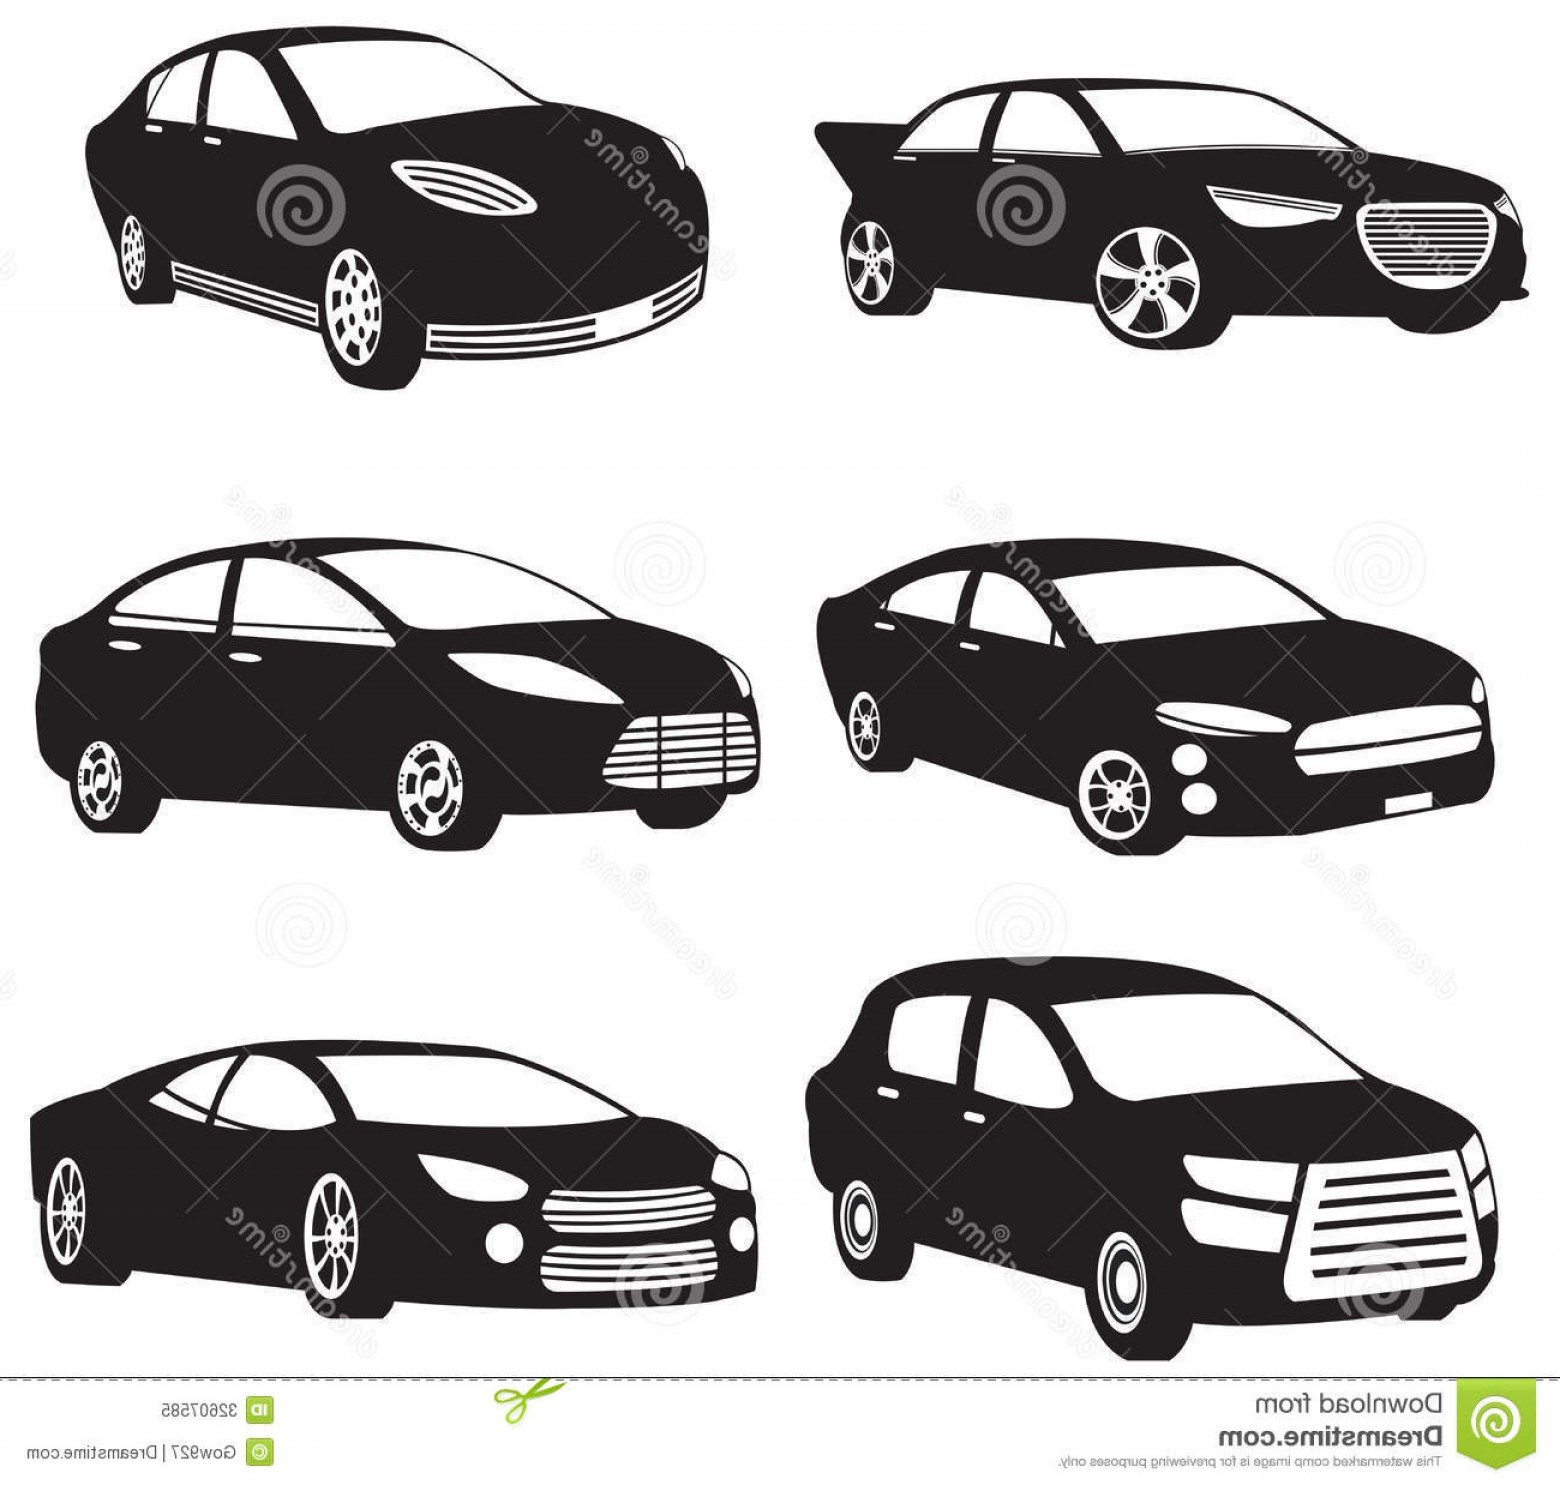 Car Silhouette Vector Free: Royalty Free Stock Photo Sets Silhouette My Original Model Cars Create Vector Image